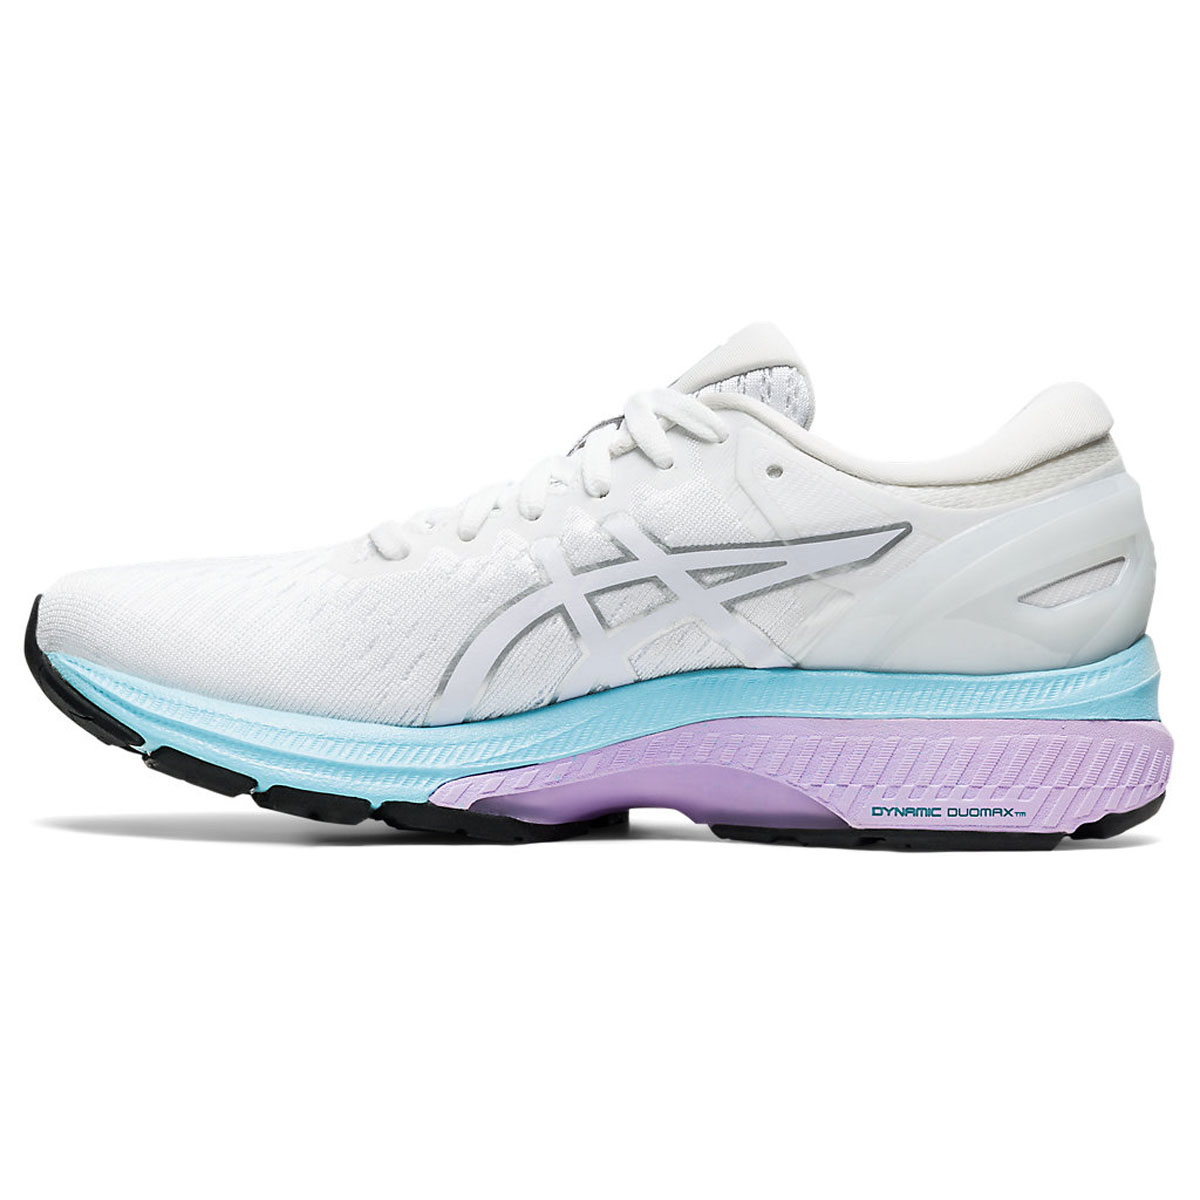 Women's Asics GEL-Kayano 27 Running Shoe - Color: White/Pure Silv (Regular Width) - Size: 5, White/Pure Silver, large, image 2